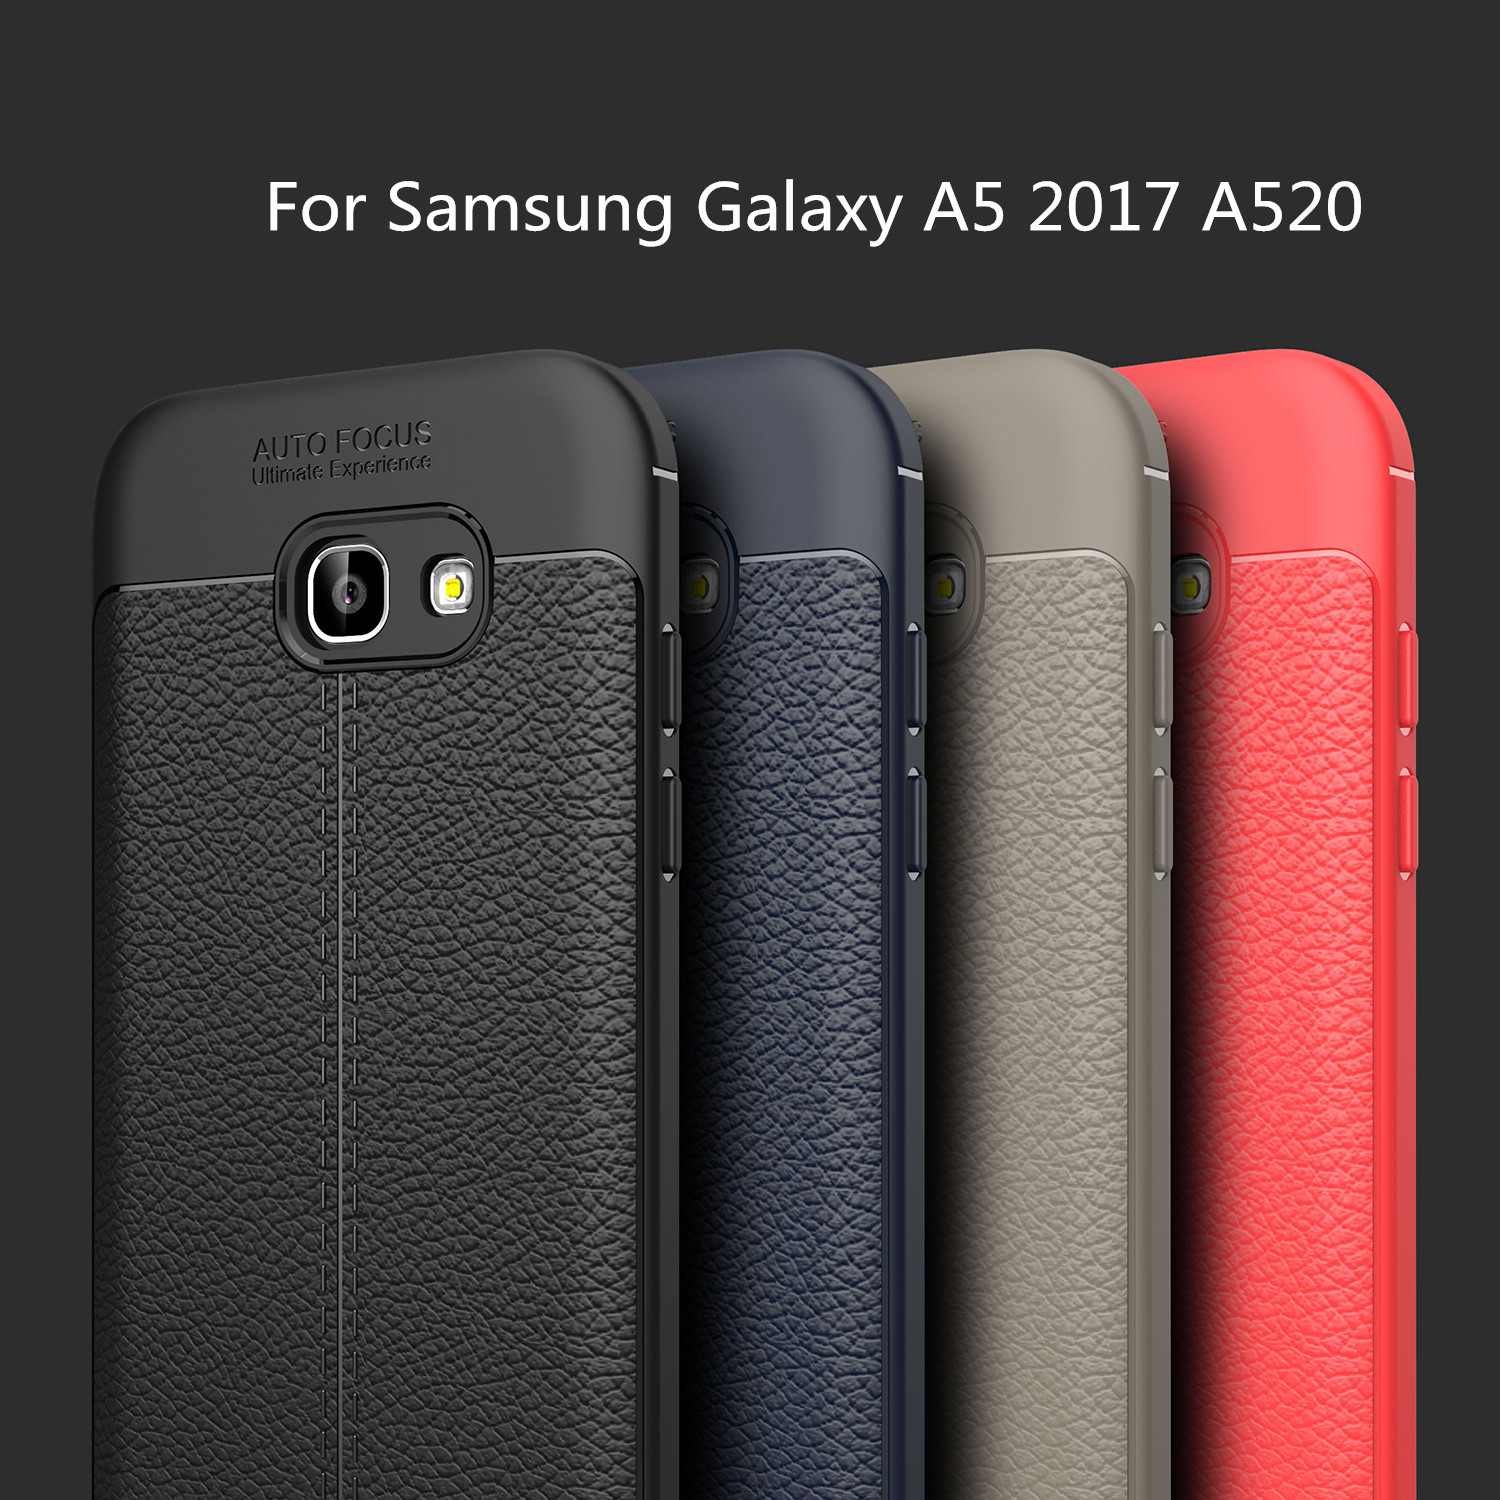 Cover For Samsung Galaxy A5 2017 Case Silicone Cover Hoesje Phone Case Bumper For Samsung Galaxy A5 2017 Leather Case Funda A520 image